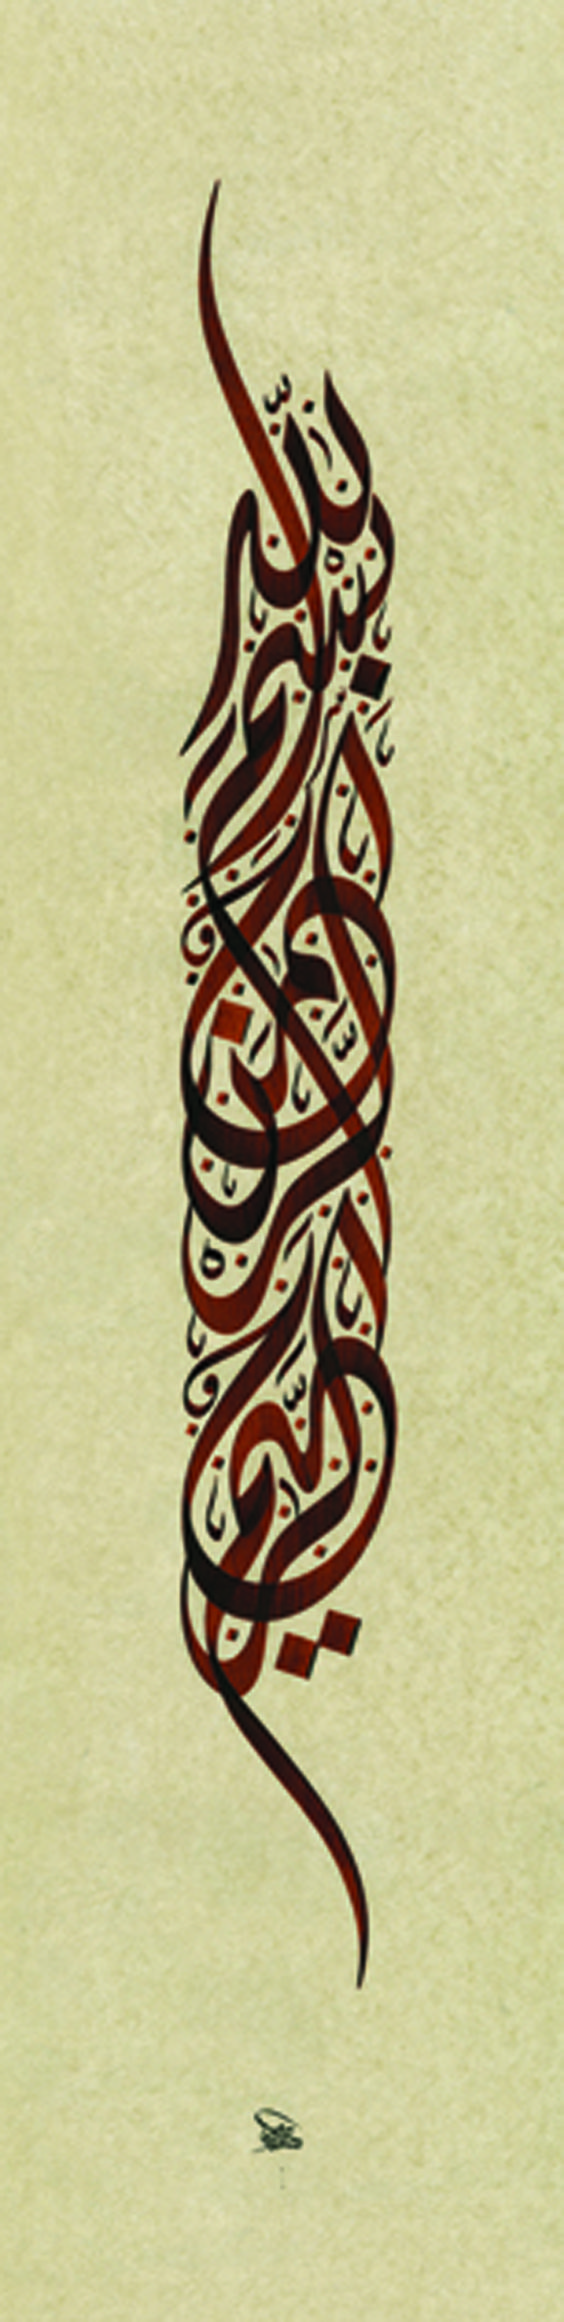 BASMALA VII - The art of Basmala in Islamic calligraphy is portrayed in a contemporary style by renowned Iraqi born artist, Wissam Shawkat. The wordsBasmala ir Rahman ir Rahim are translated to mean In the Name of God, the Merciful and the Compassionate.: